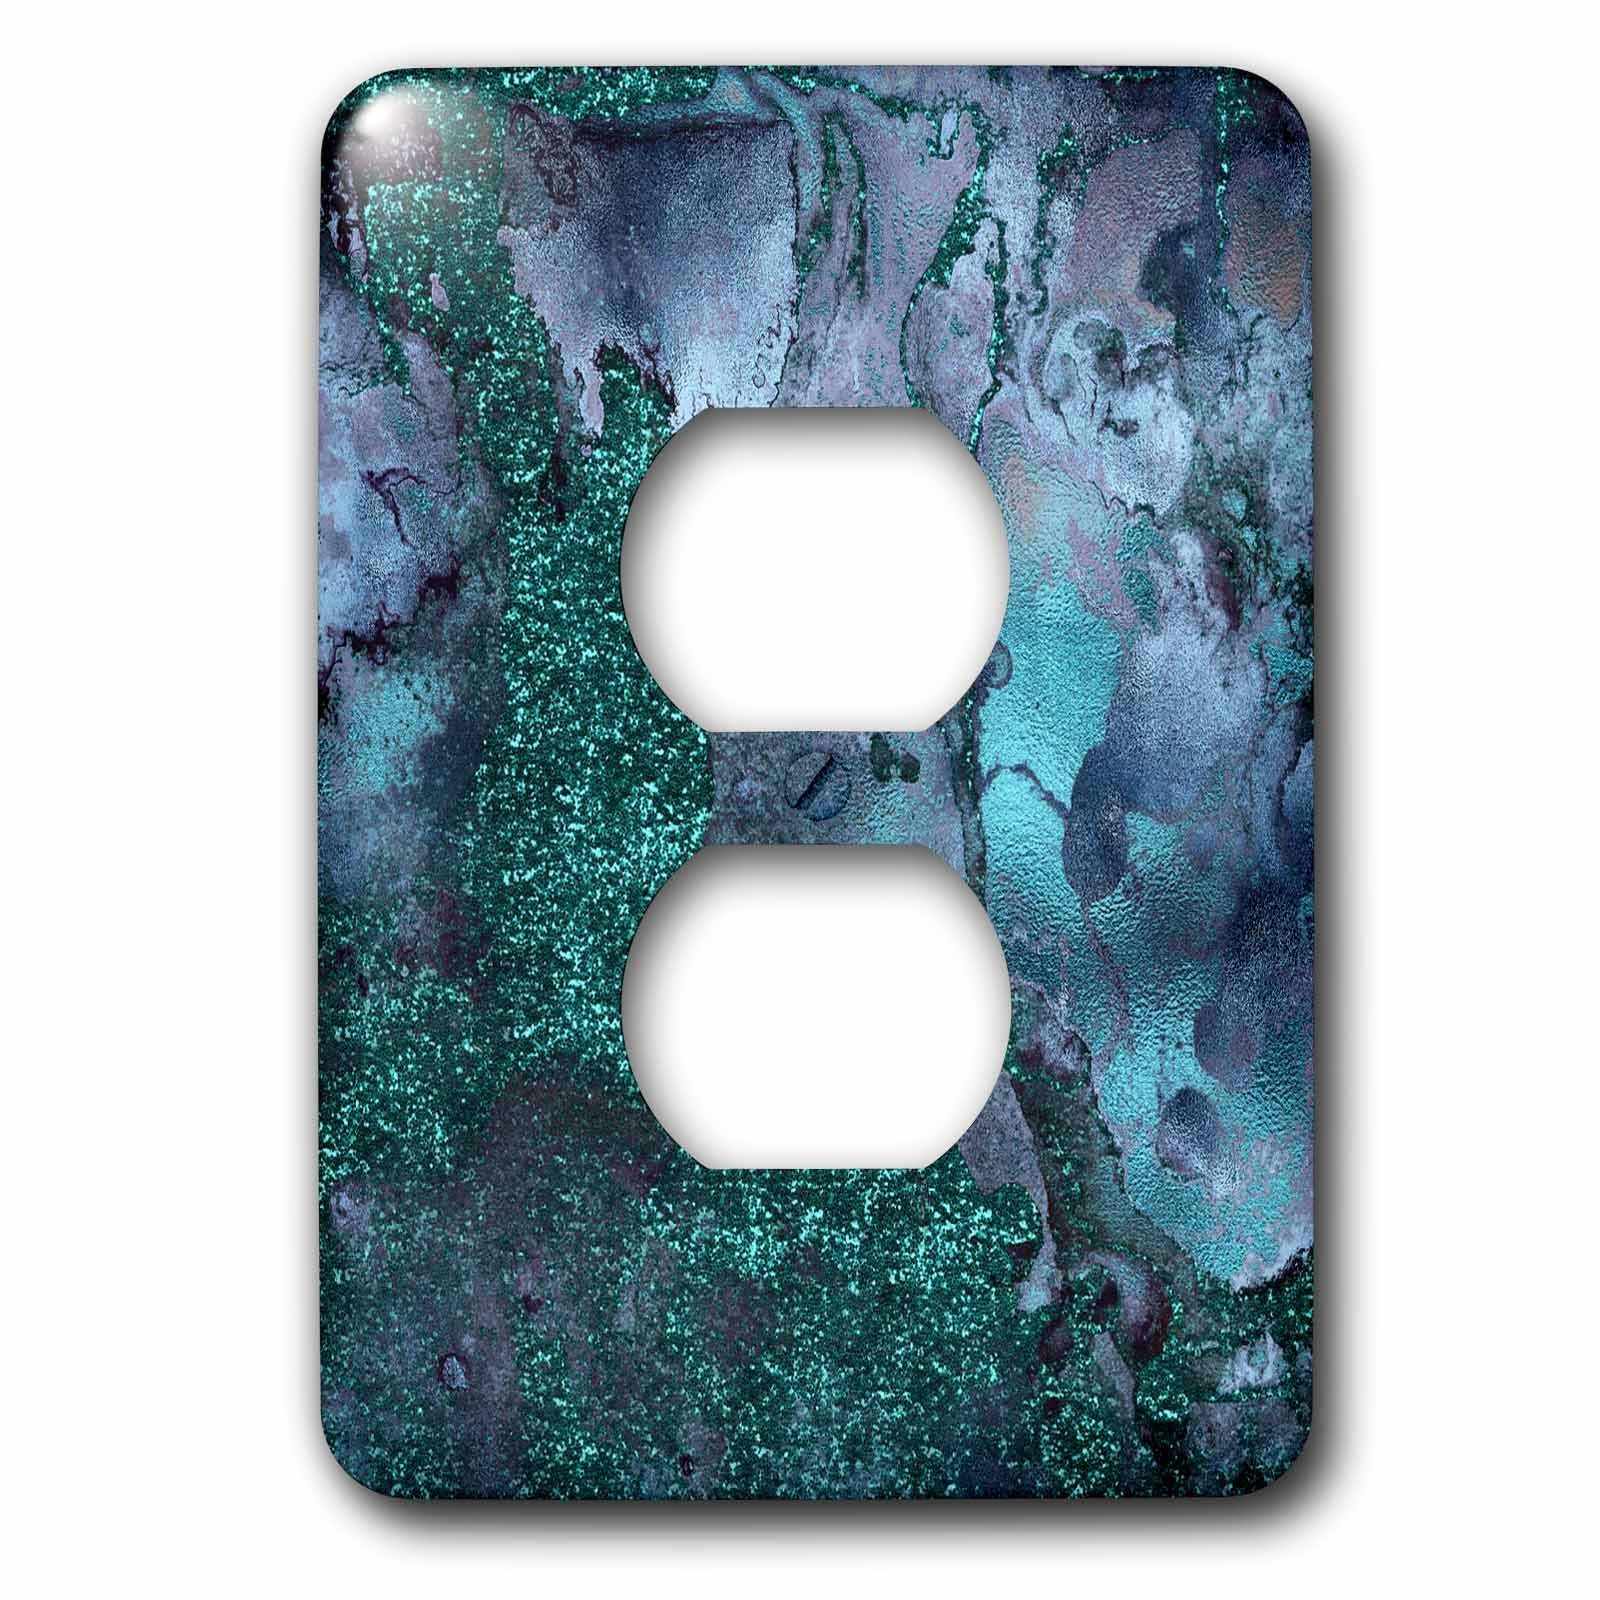 3dRose Uta Naumann Faux Glitter Pattern - Luxury Malachite Ombre Gem Stone Marble Glitter Metallic Faux Print - Light Switch Covers - 2 plug outlet cover (lsp_269018_6) by 3dRose (Image #1)